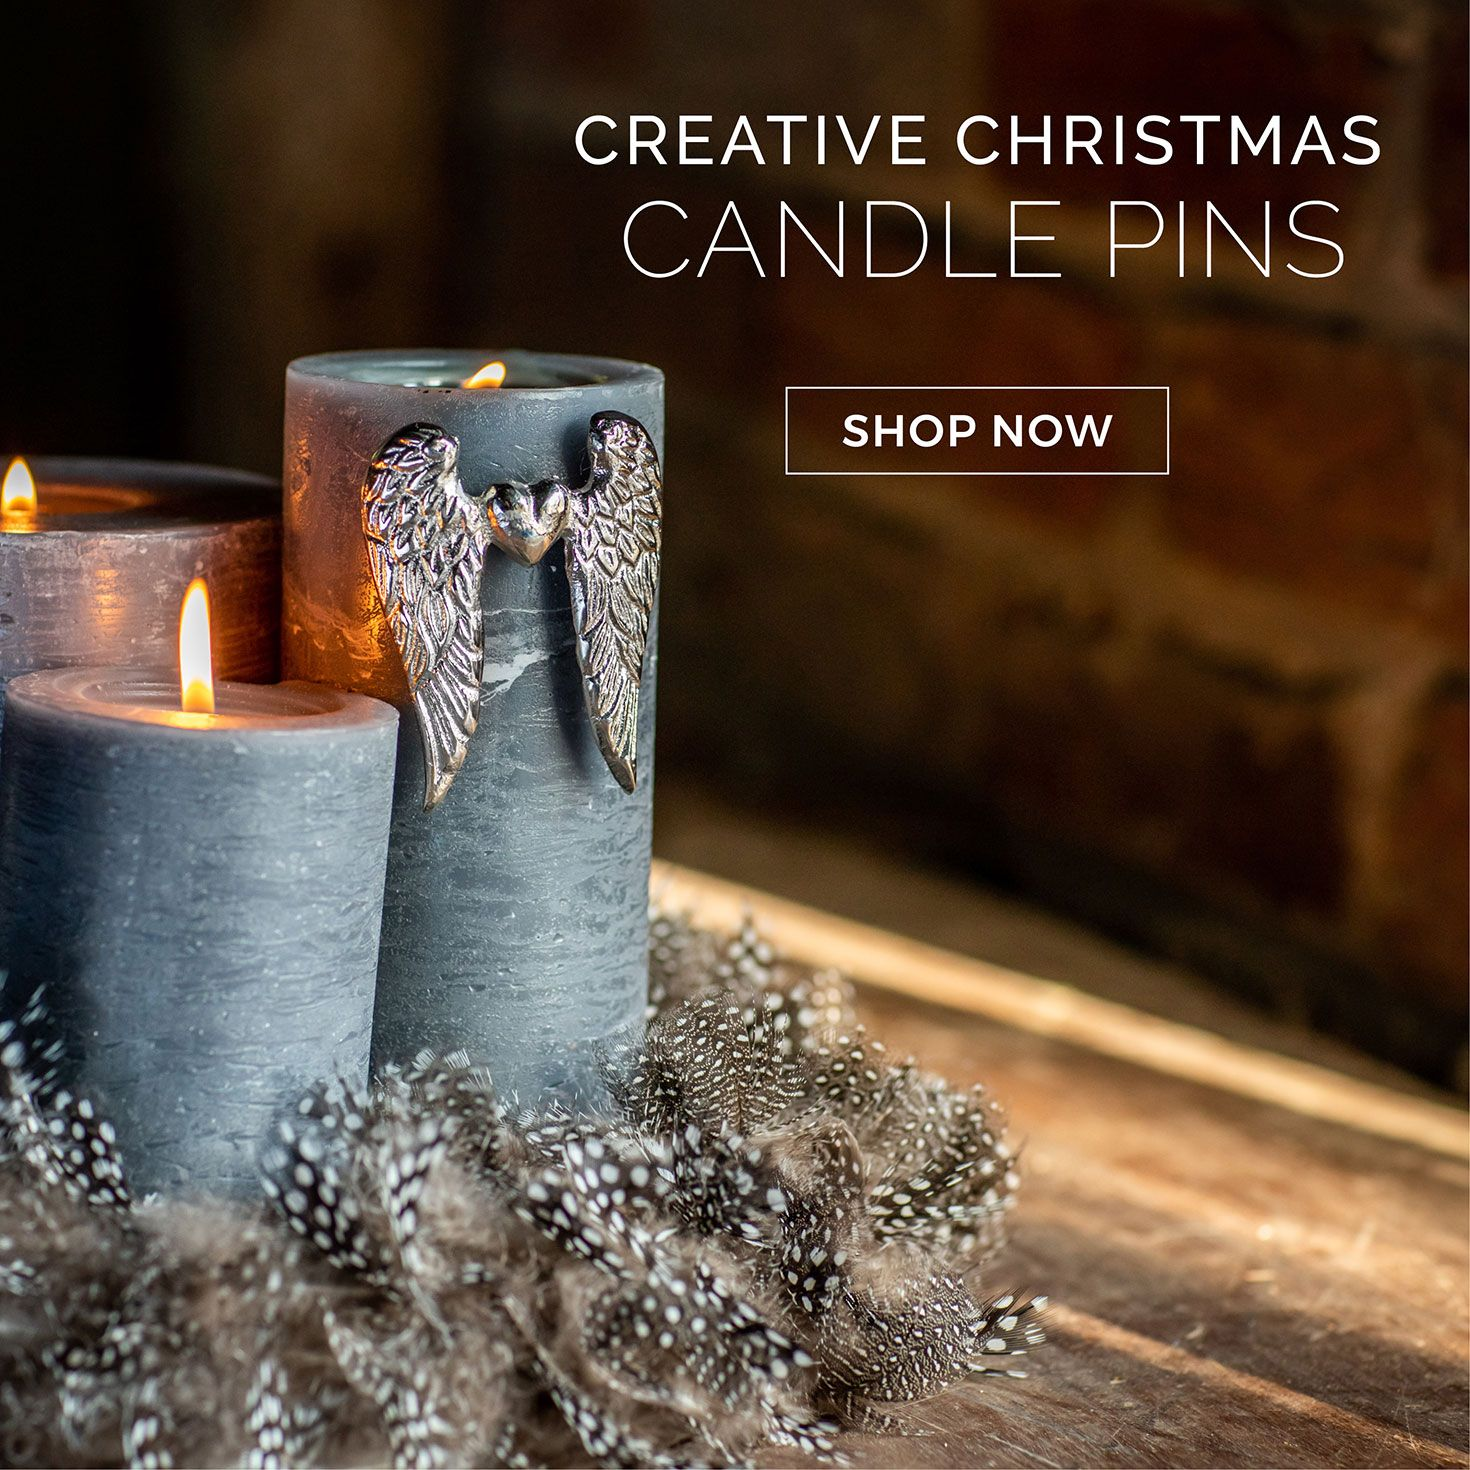 Candle Pins